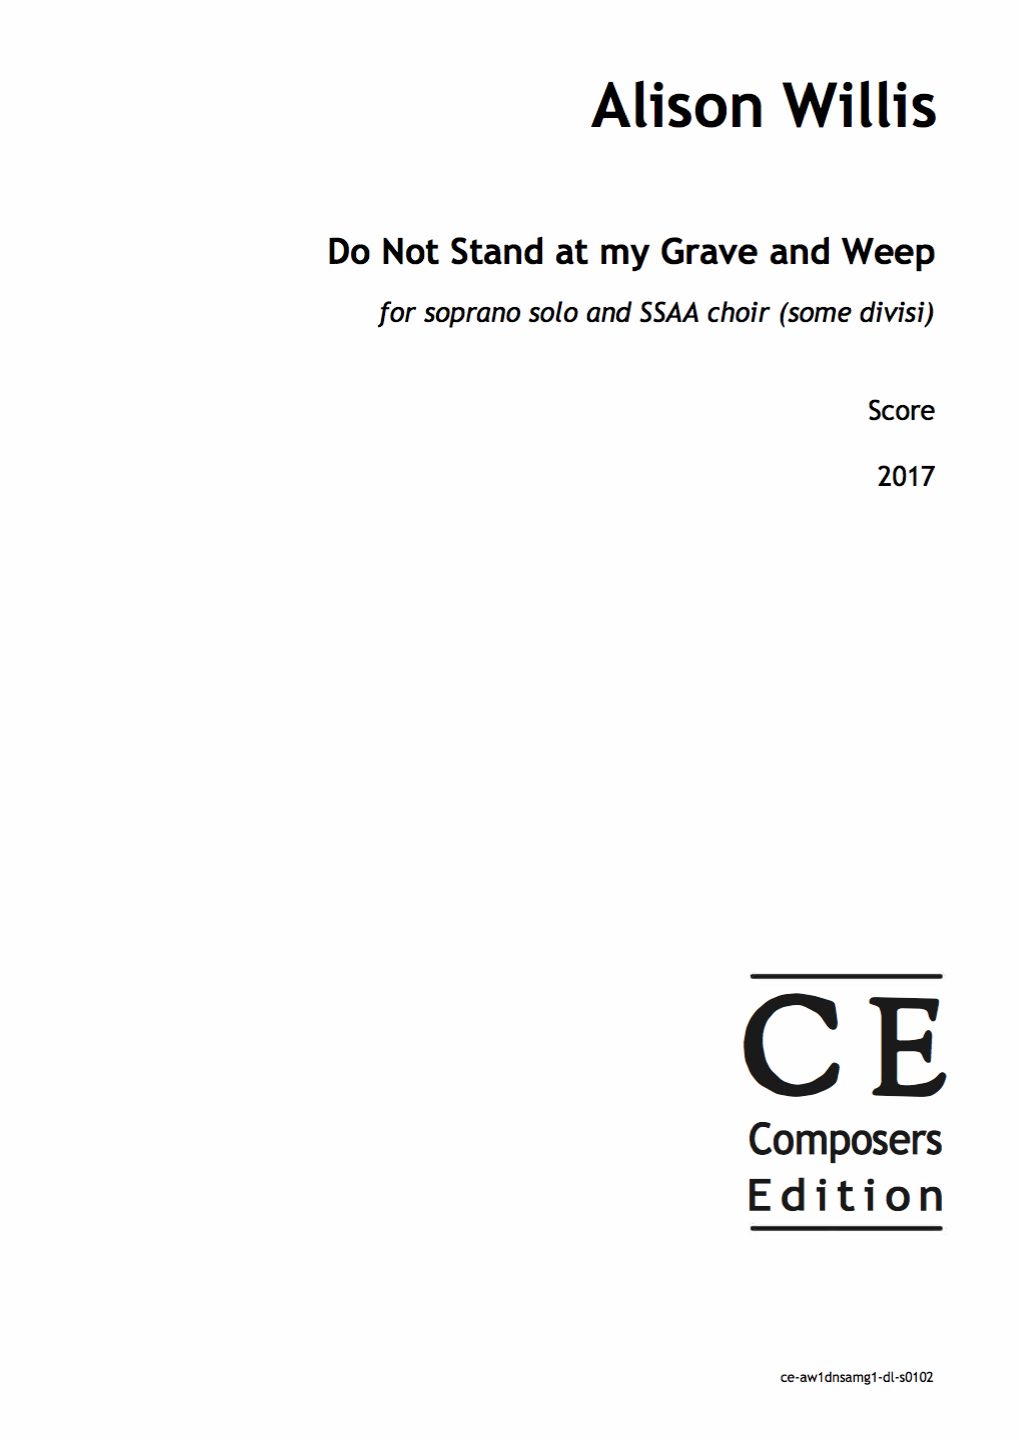 Alison Willis: Do Not Stand at my Grave and Weep for soprano solo and SSAA choir or SATB choir